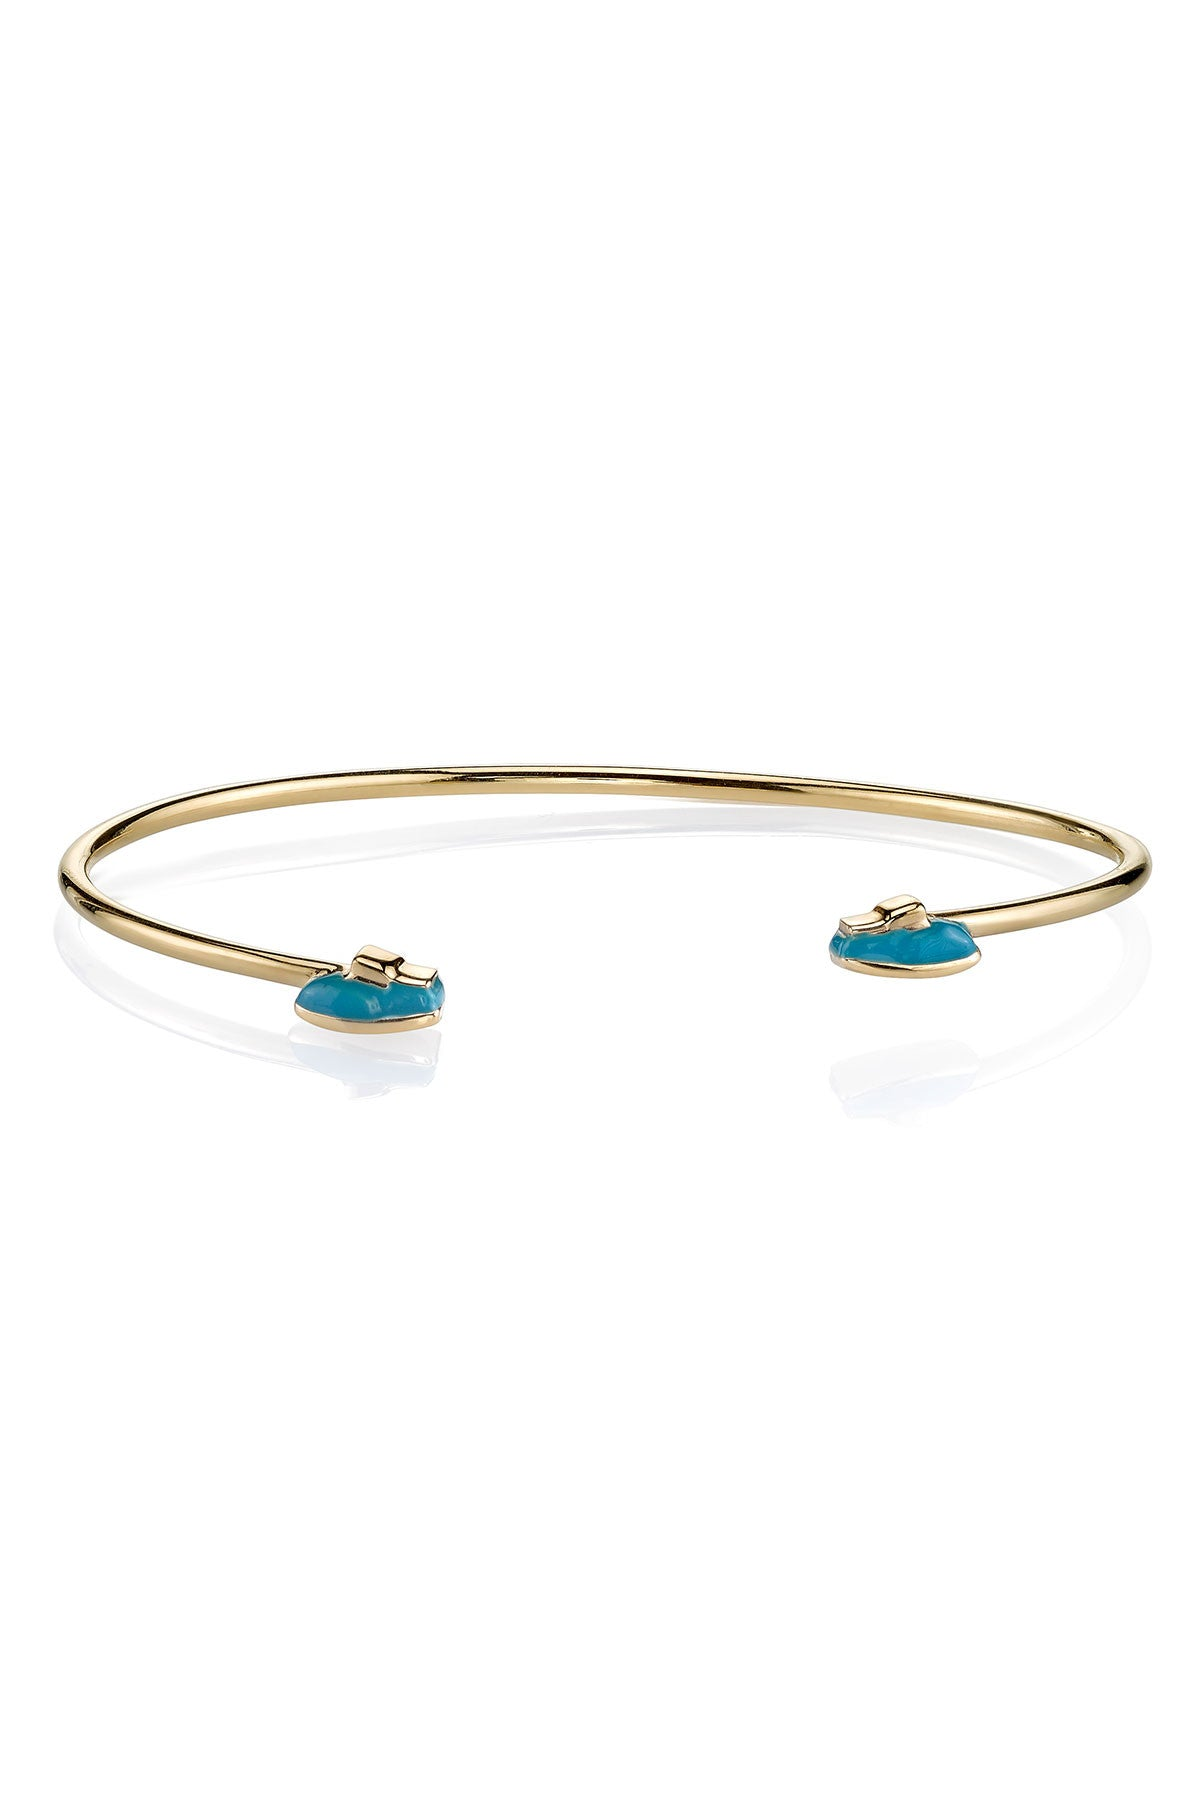 MPH Wire Bangle with Mr. Blue Shoes